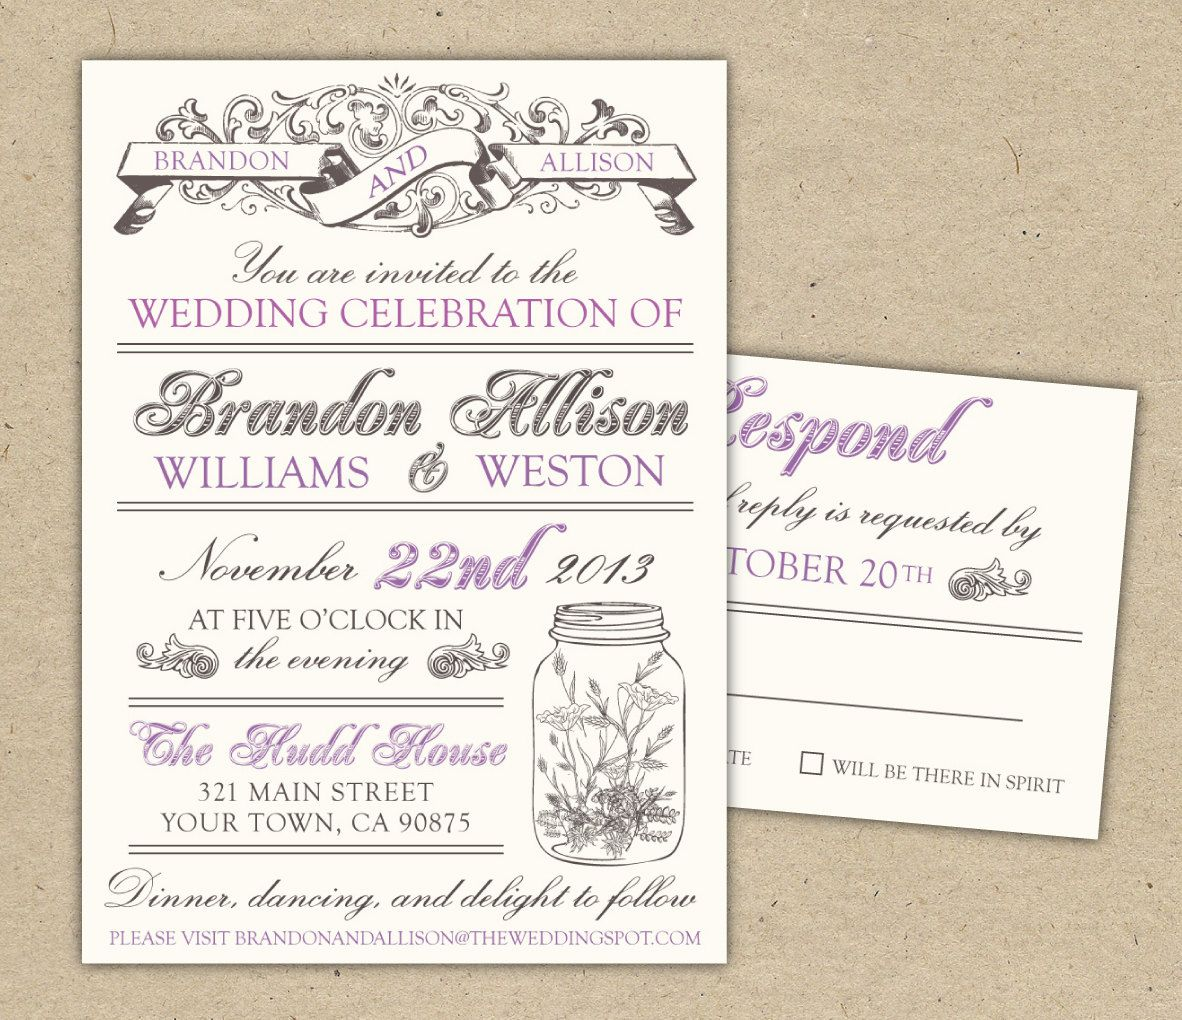 templates for invitations printable vintage wedding templates for invitations printable vintage wedding invitation templates get